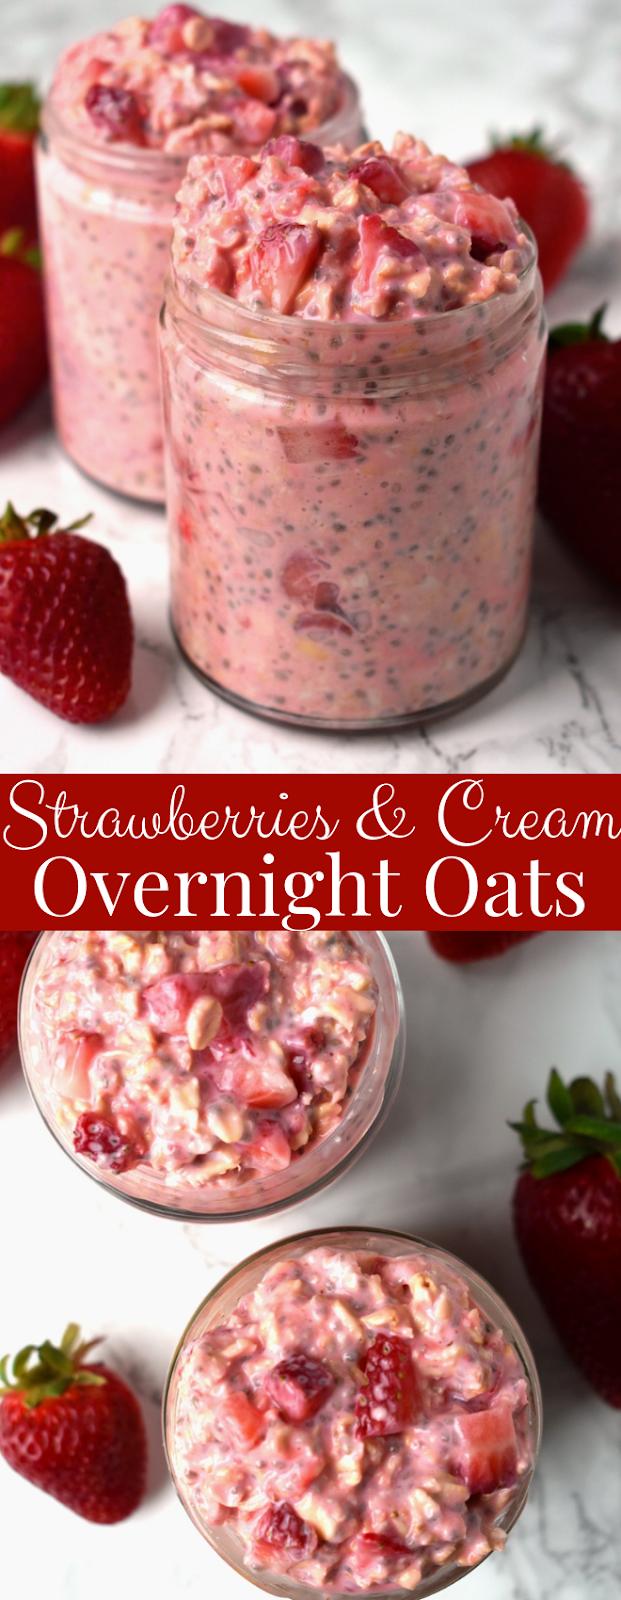 Strawberries and Cream Overnight Oats #breakfastideas